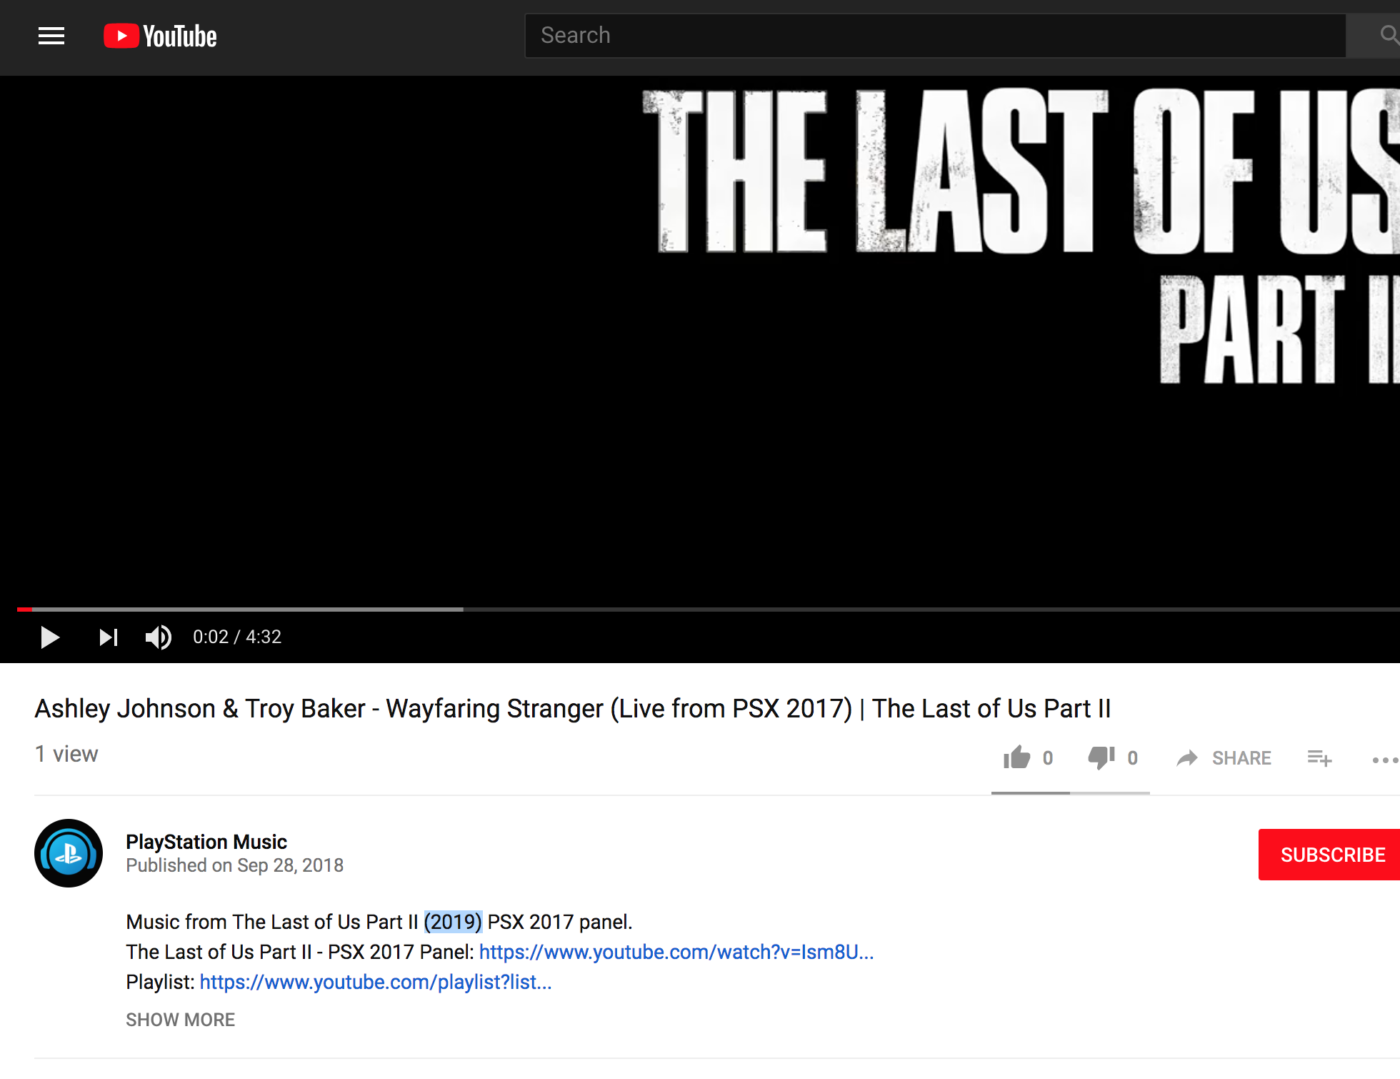 the last of us 2 release date, Report: The Last of Us 2 Release Date Set for 2019 According to Official PlayStation Music Channel, MP1st, MP1st